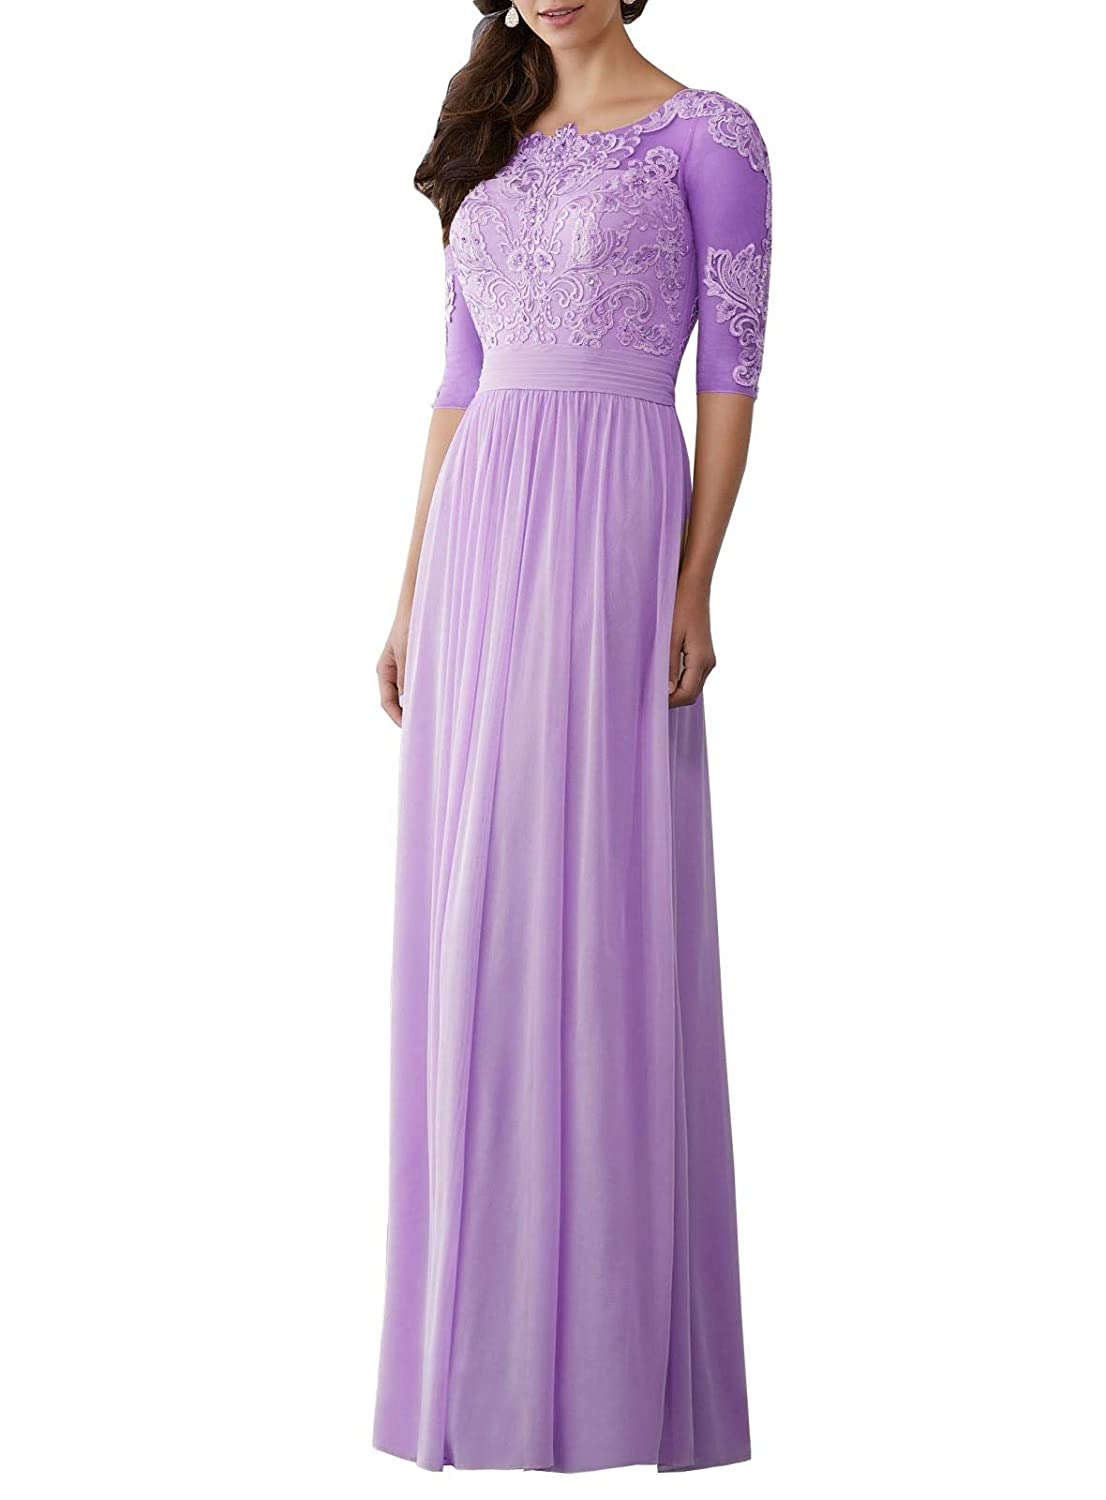 Light Purple Wanshaqin Women's Aline Illusion Lace Appliques Evening Gown Formal Wedding Party Dress for Brides with Pleated Empire Waist